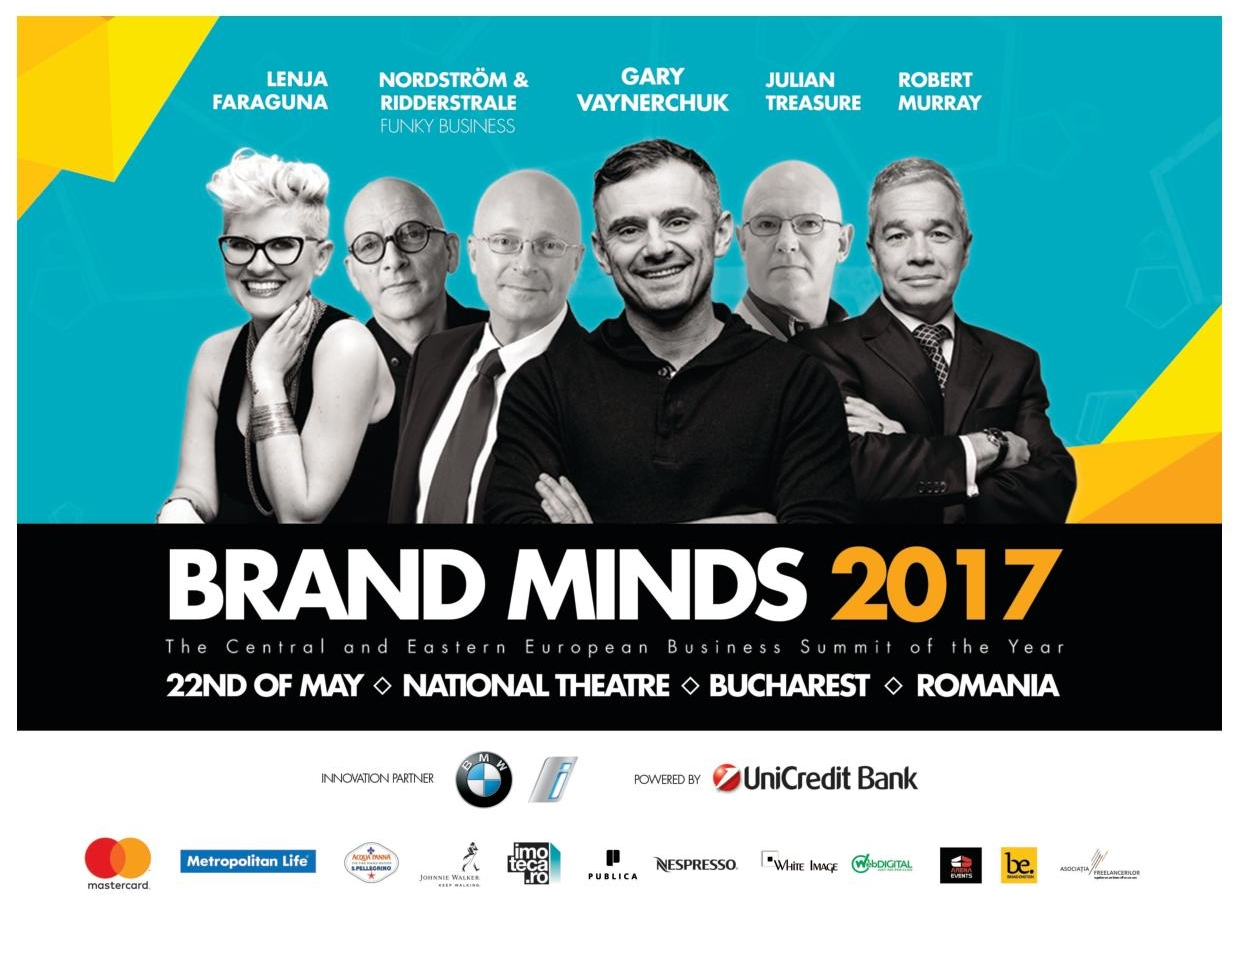 Brand Minds - The Central and Eastern European Business Summit of the Year